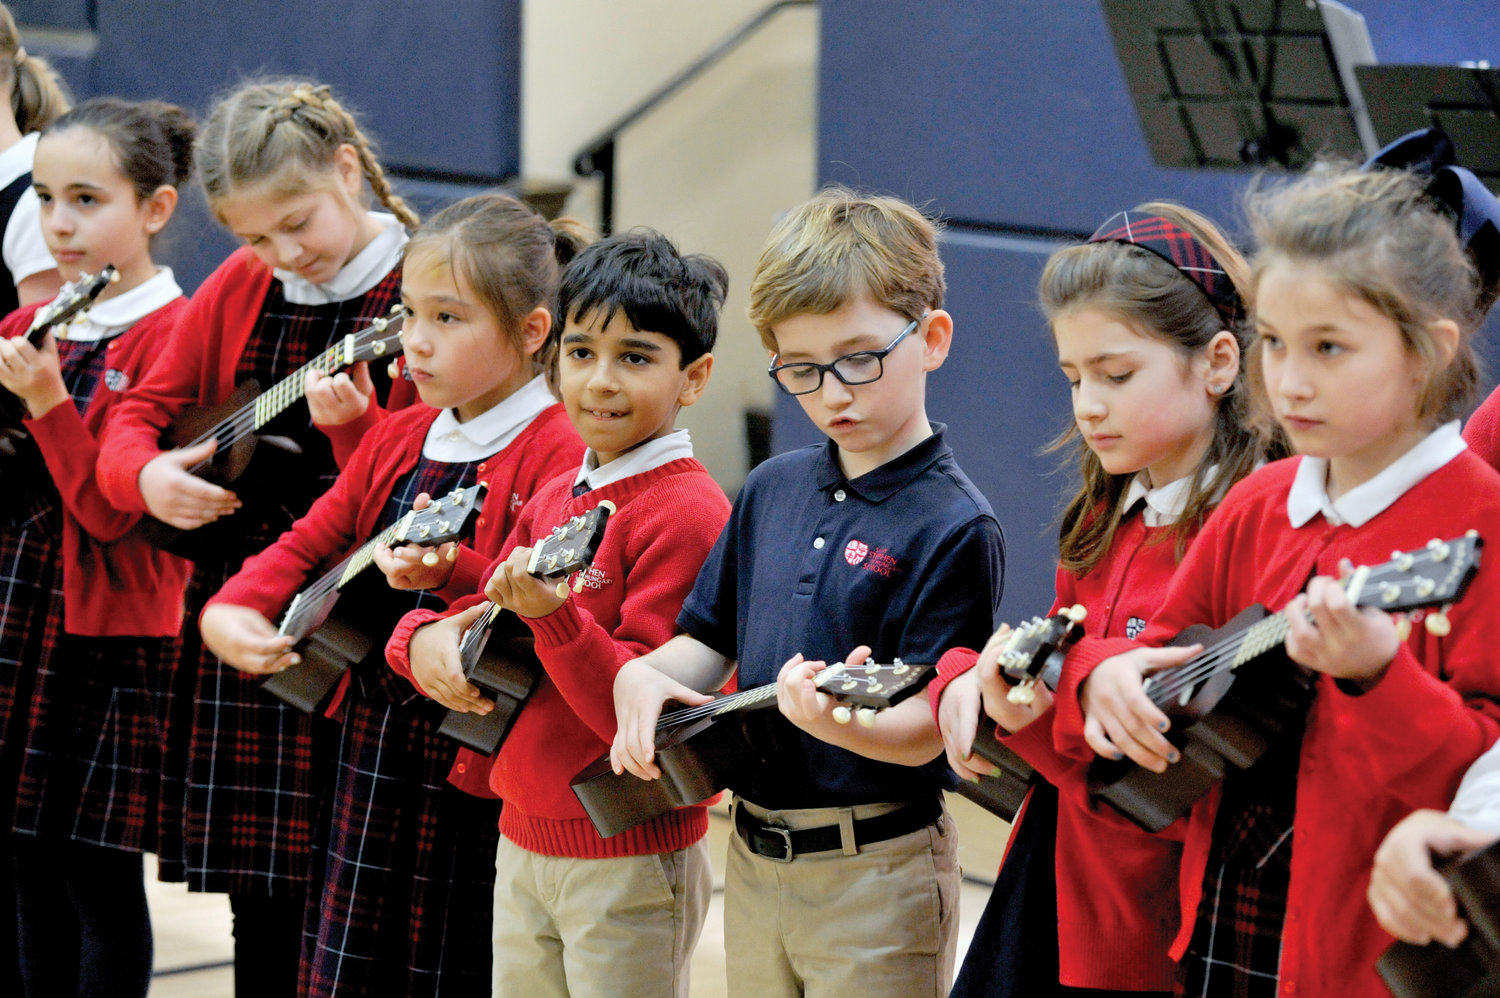 Youngsters play the ukulele during a reception.